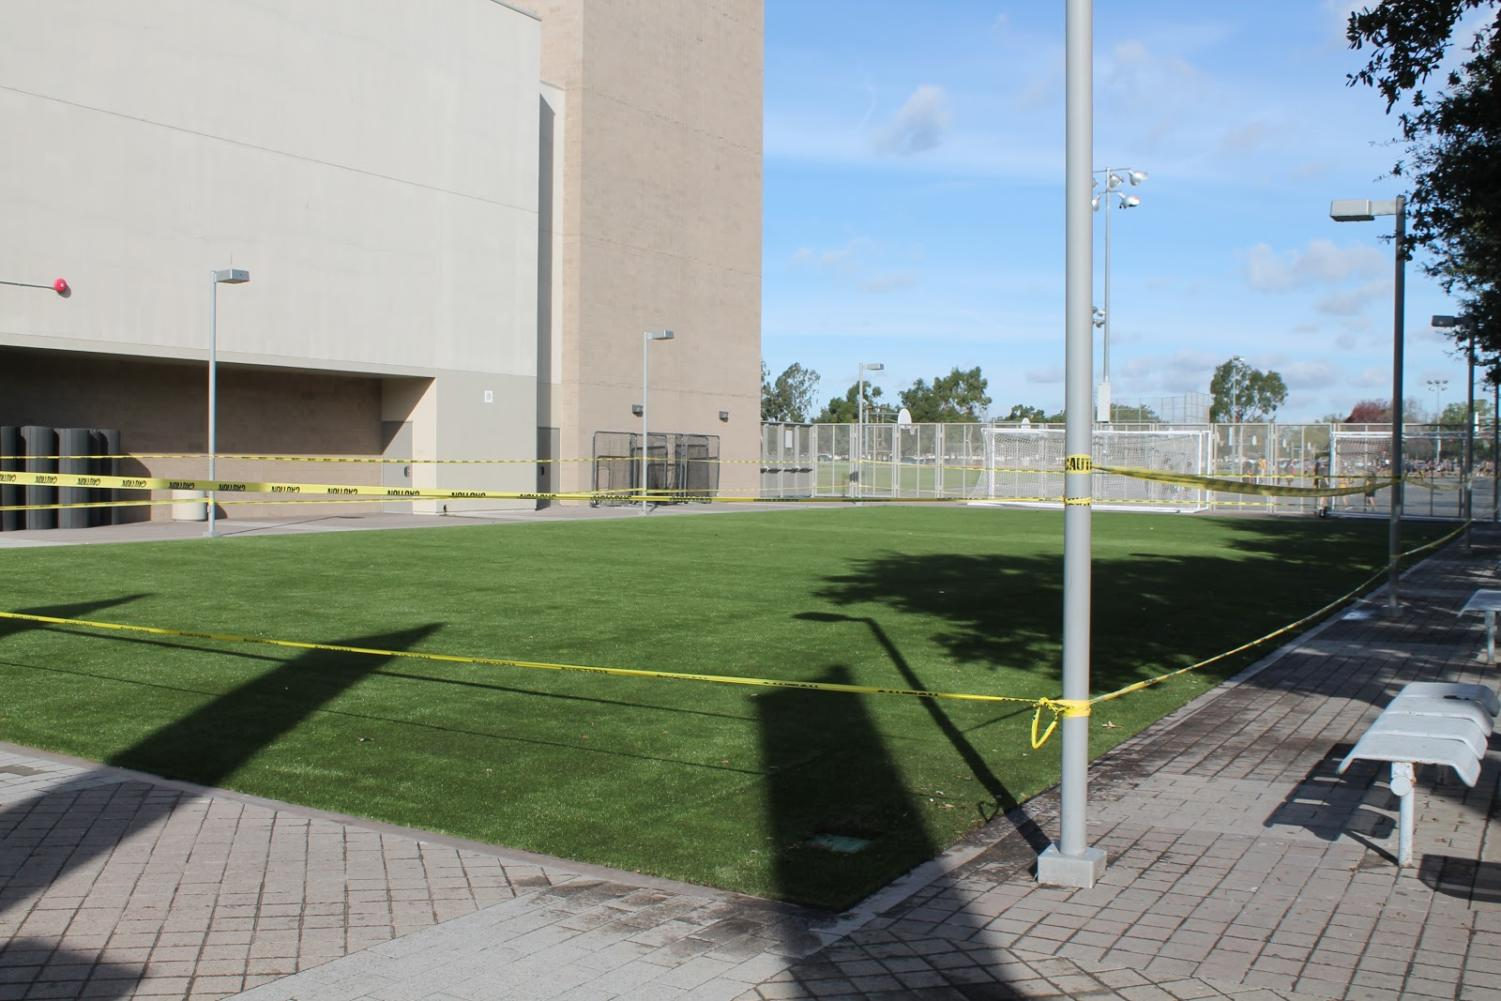 The newly added artificial turf on Friday, Nov. 30, 2018.